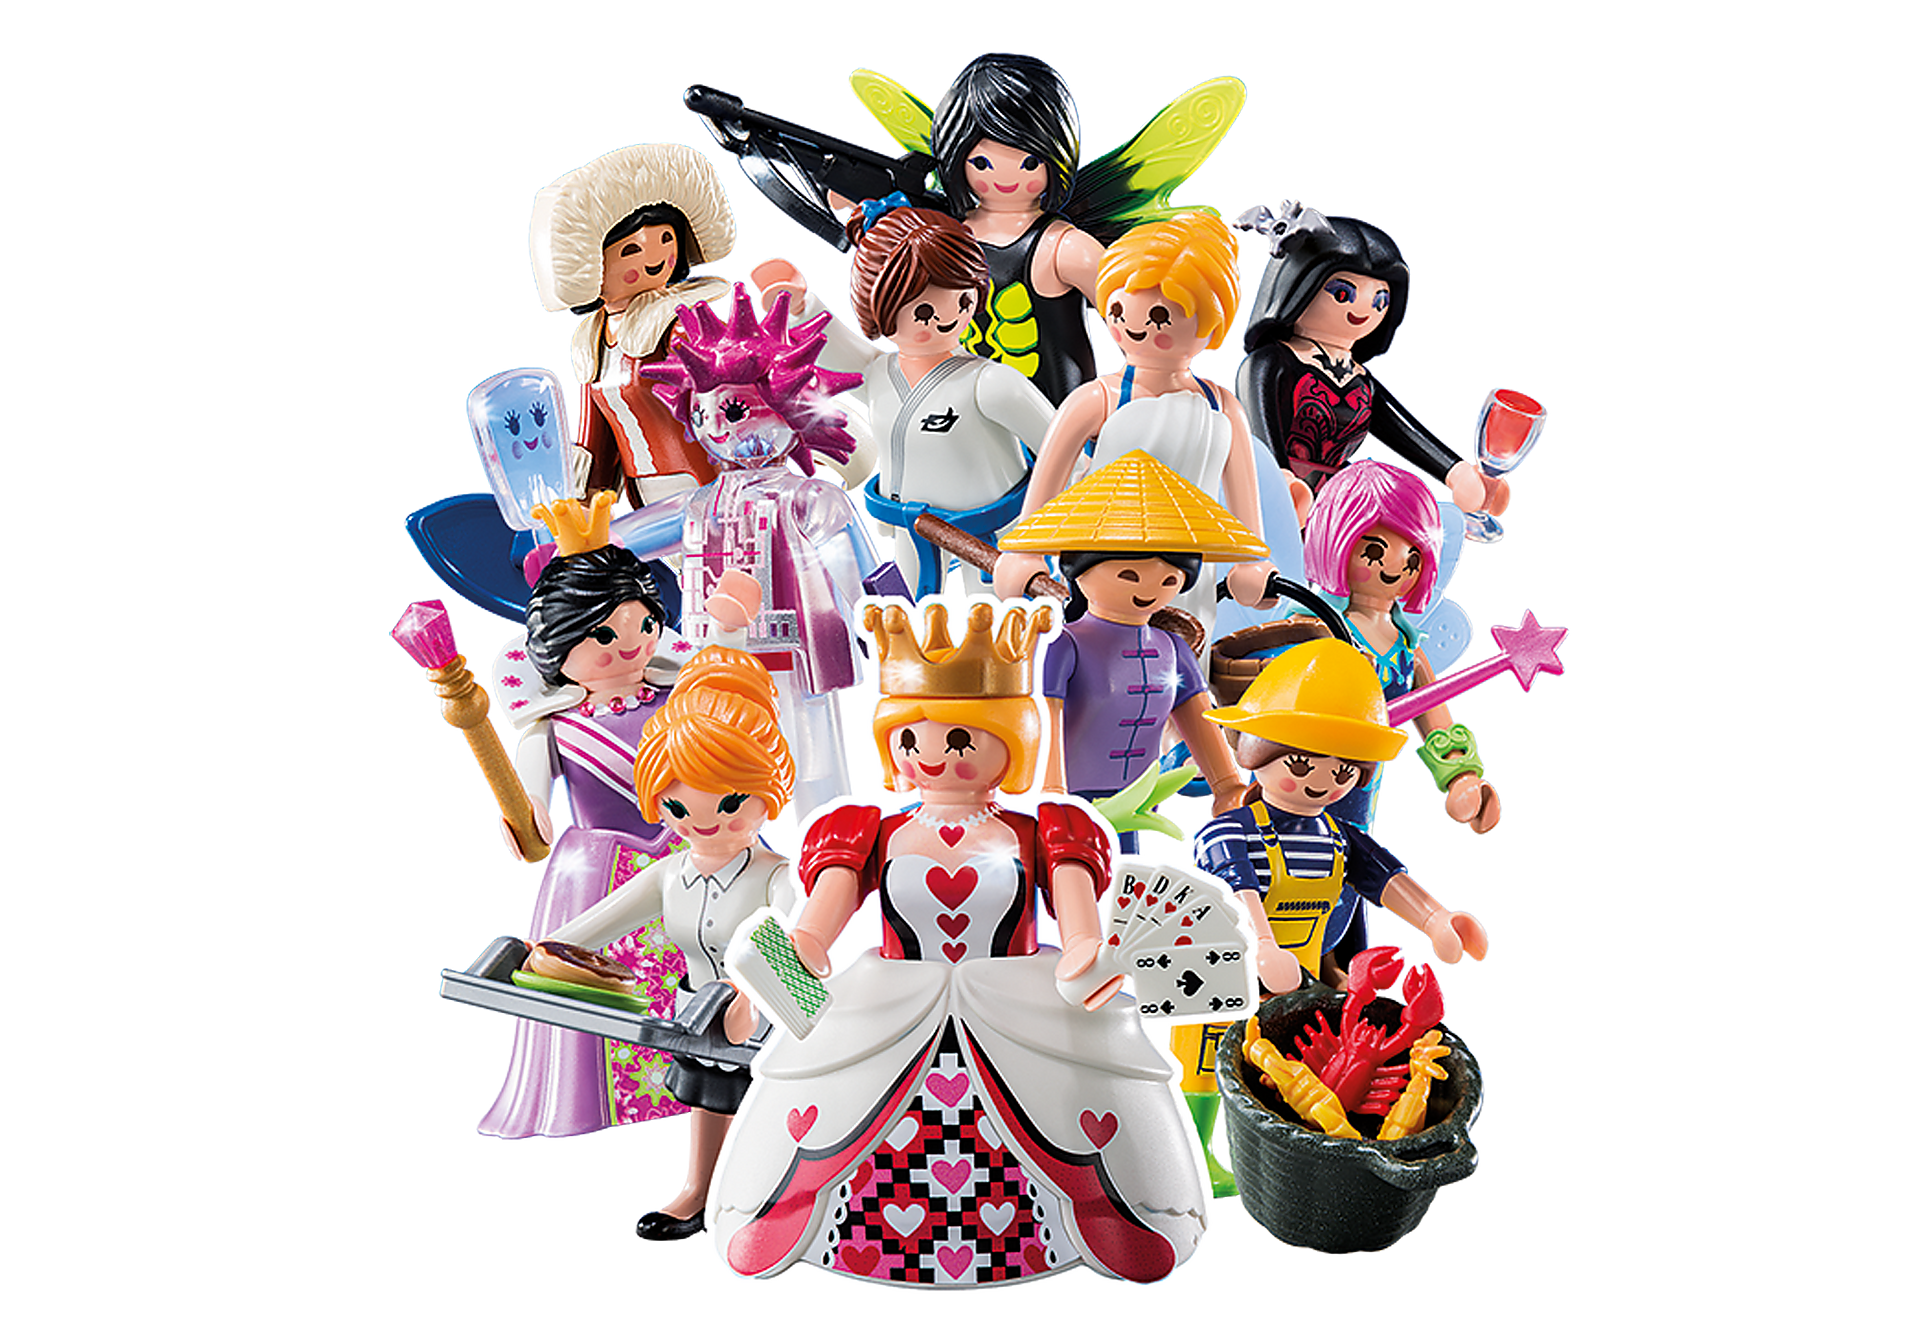 6841 PLAYMOBIL-Figures Girls (Serie 10) zoom image1